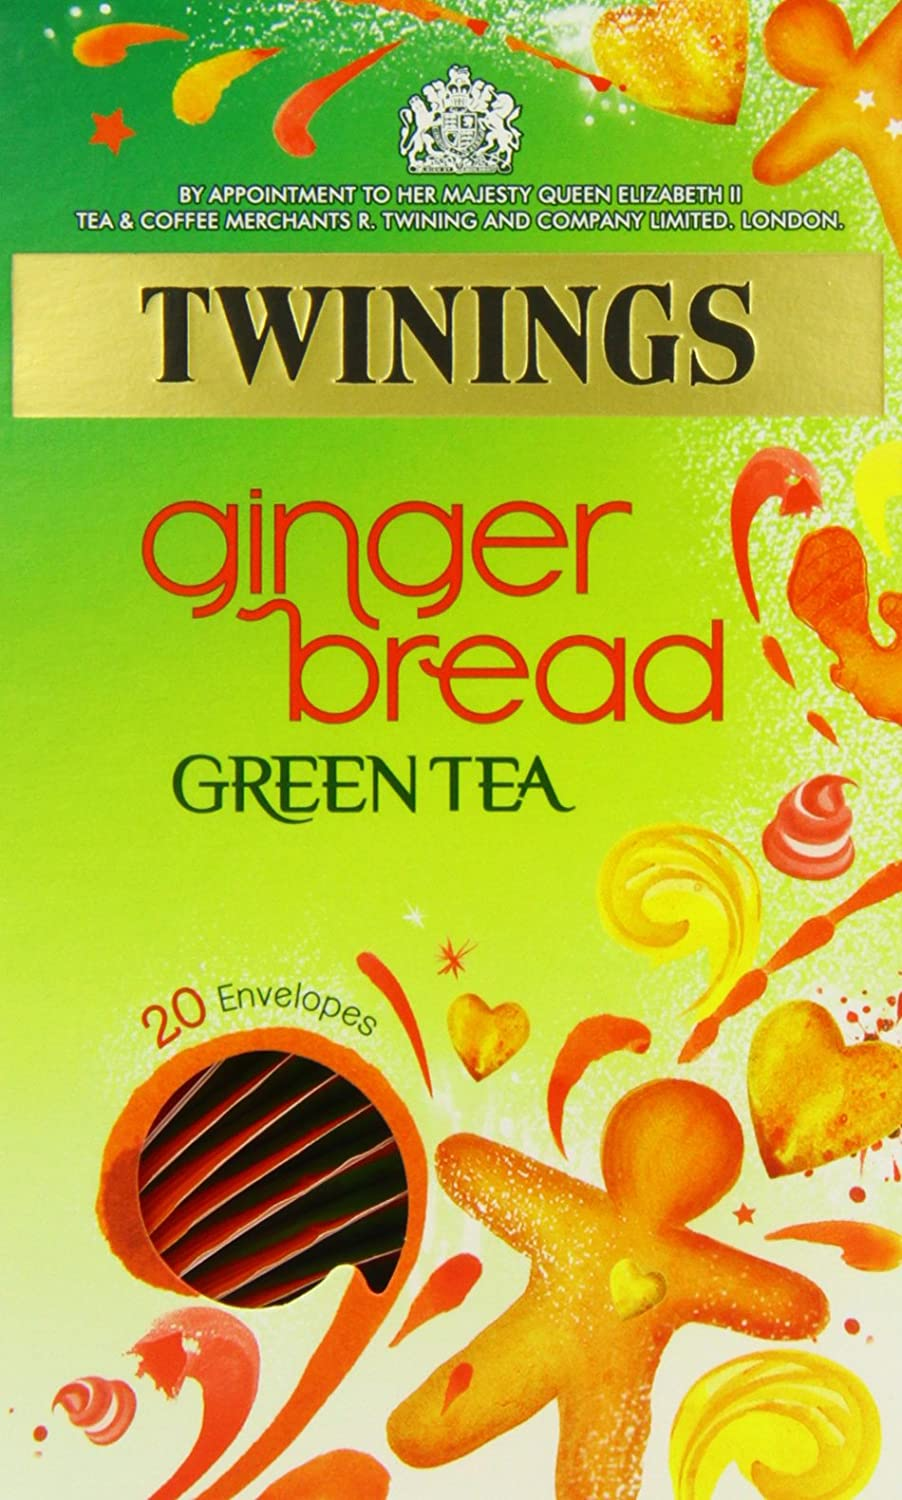 Twinings Gingerbread Green Tea 20 Envelopes (Pack of 4)